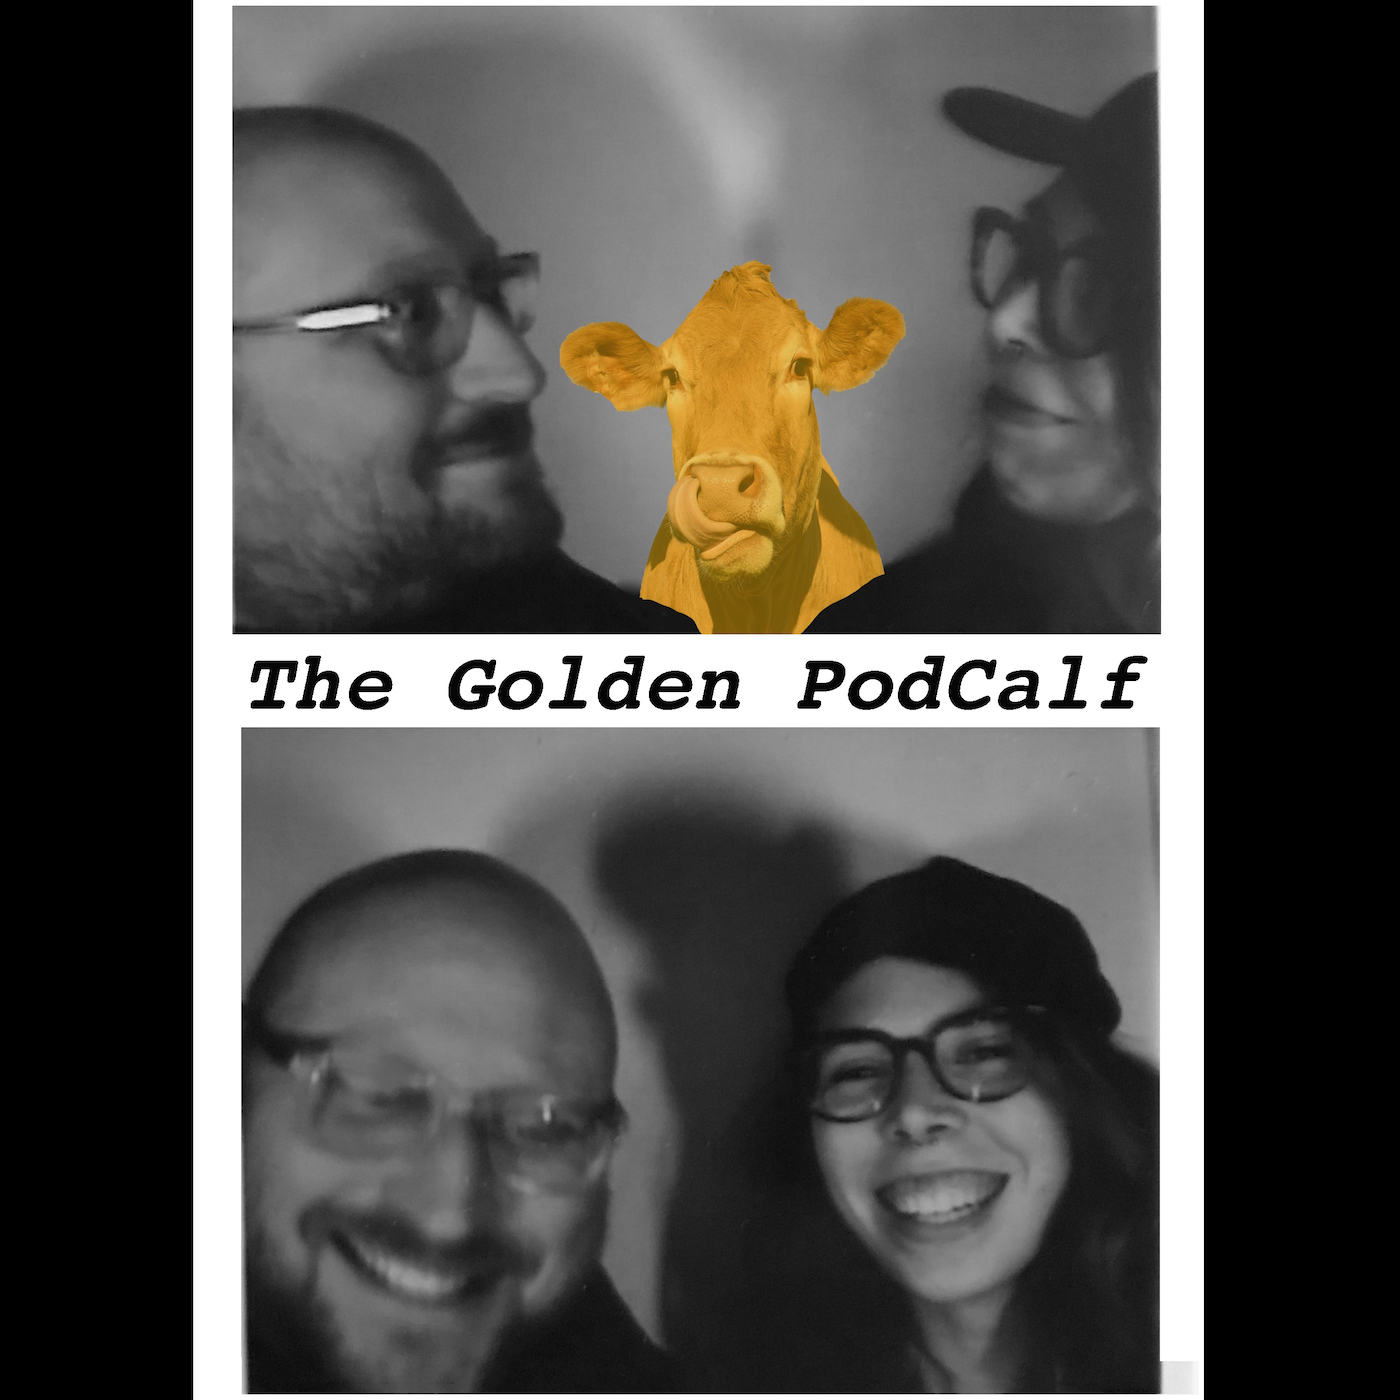 The Golden Podcalf